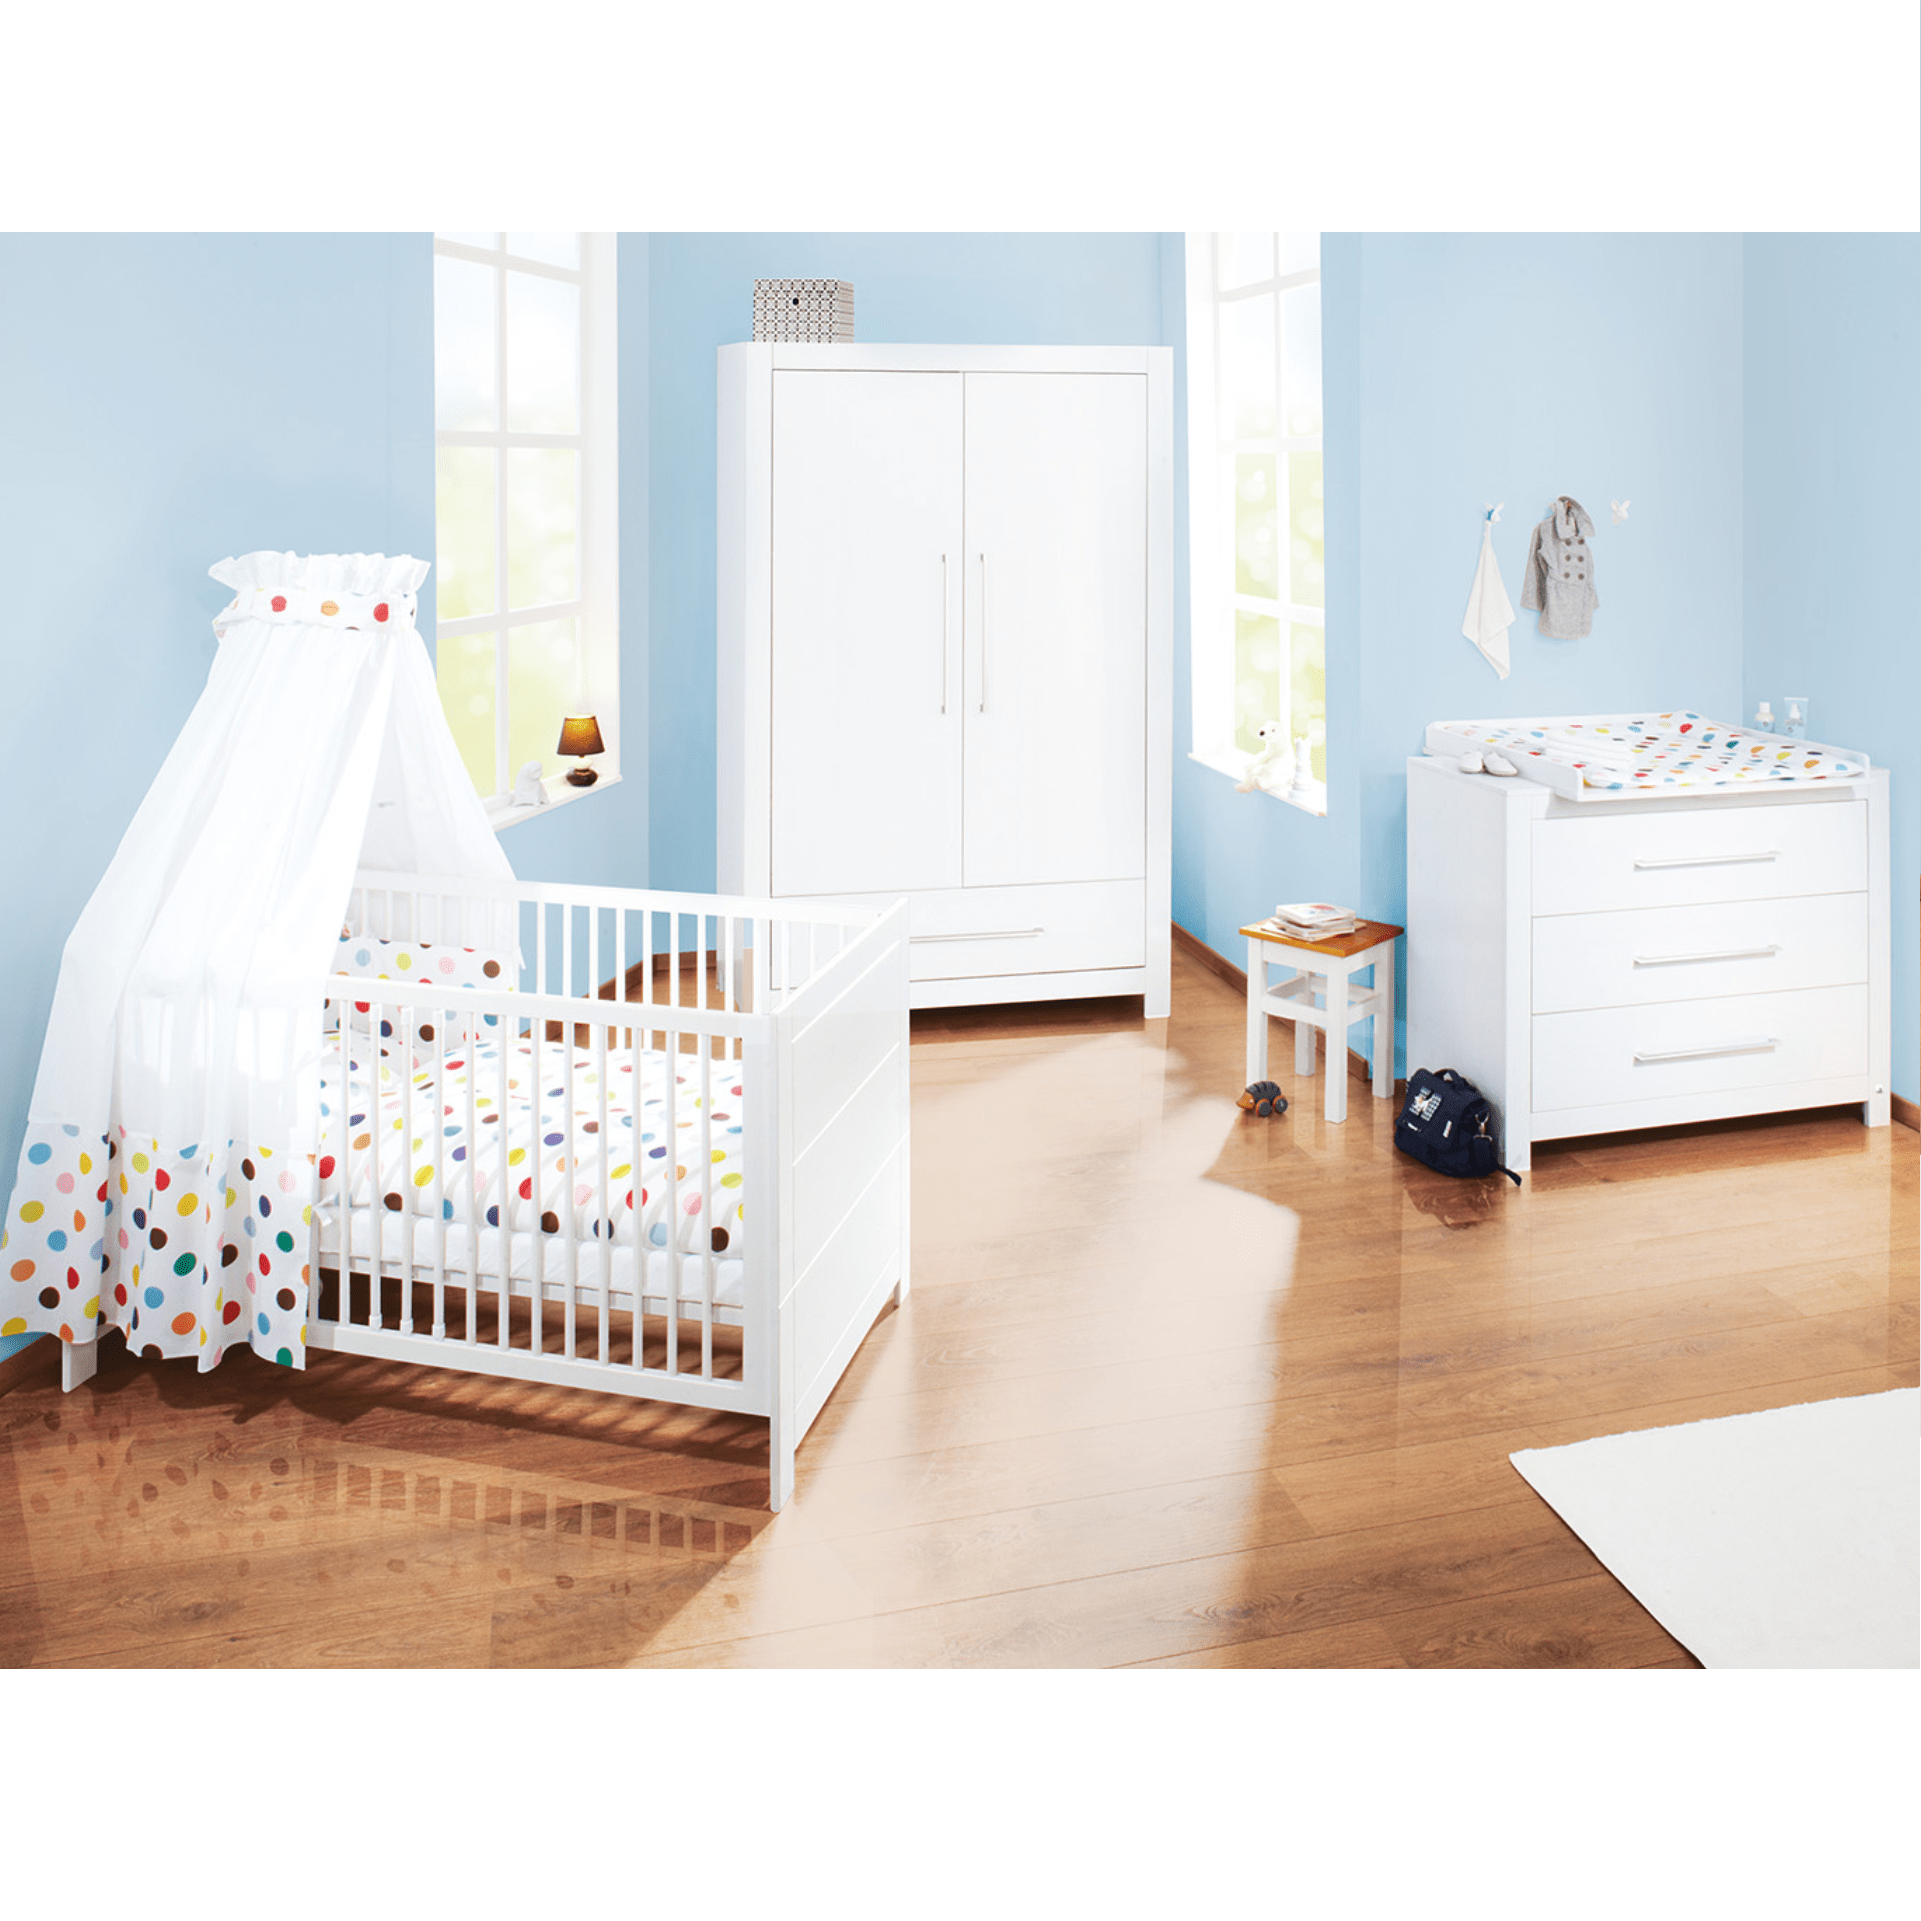 Pinolino Babyzimmer Tuula Pinolino Pinolino Upholstery And Decoration Table Mat And Chairs